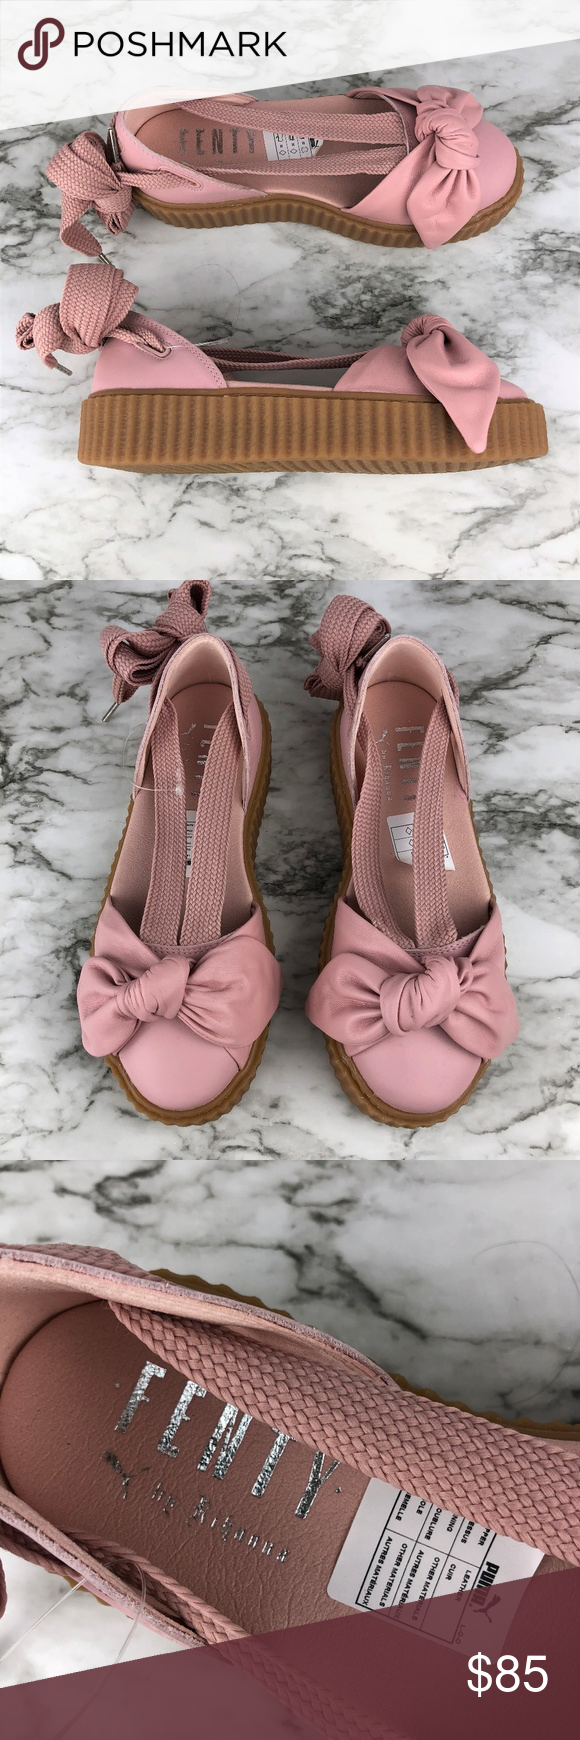 NEW PUMA Fenty Pink Bandana Leather Creeper Flats Brand new without box.  -Leather ankle-wrap flat with front bow detail -Leather upper -Round toe  -Lace-up ... 72c1ae345